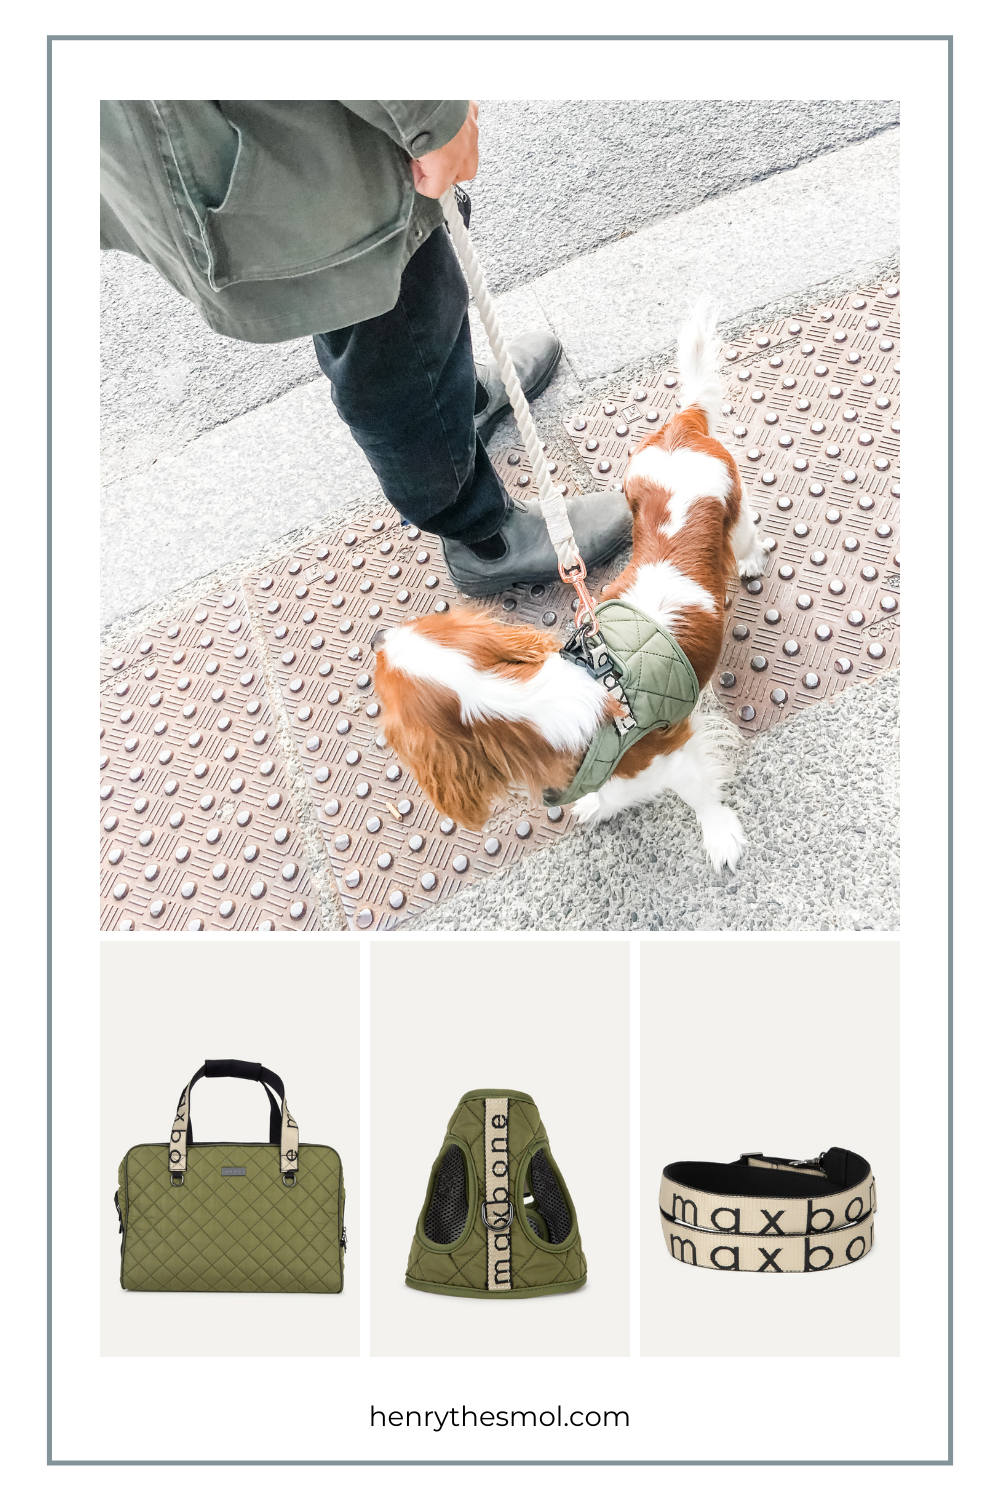 The Maxbone City Carrier For On-The-Go Dog Moms